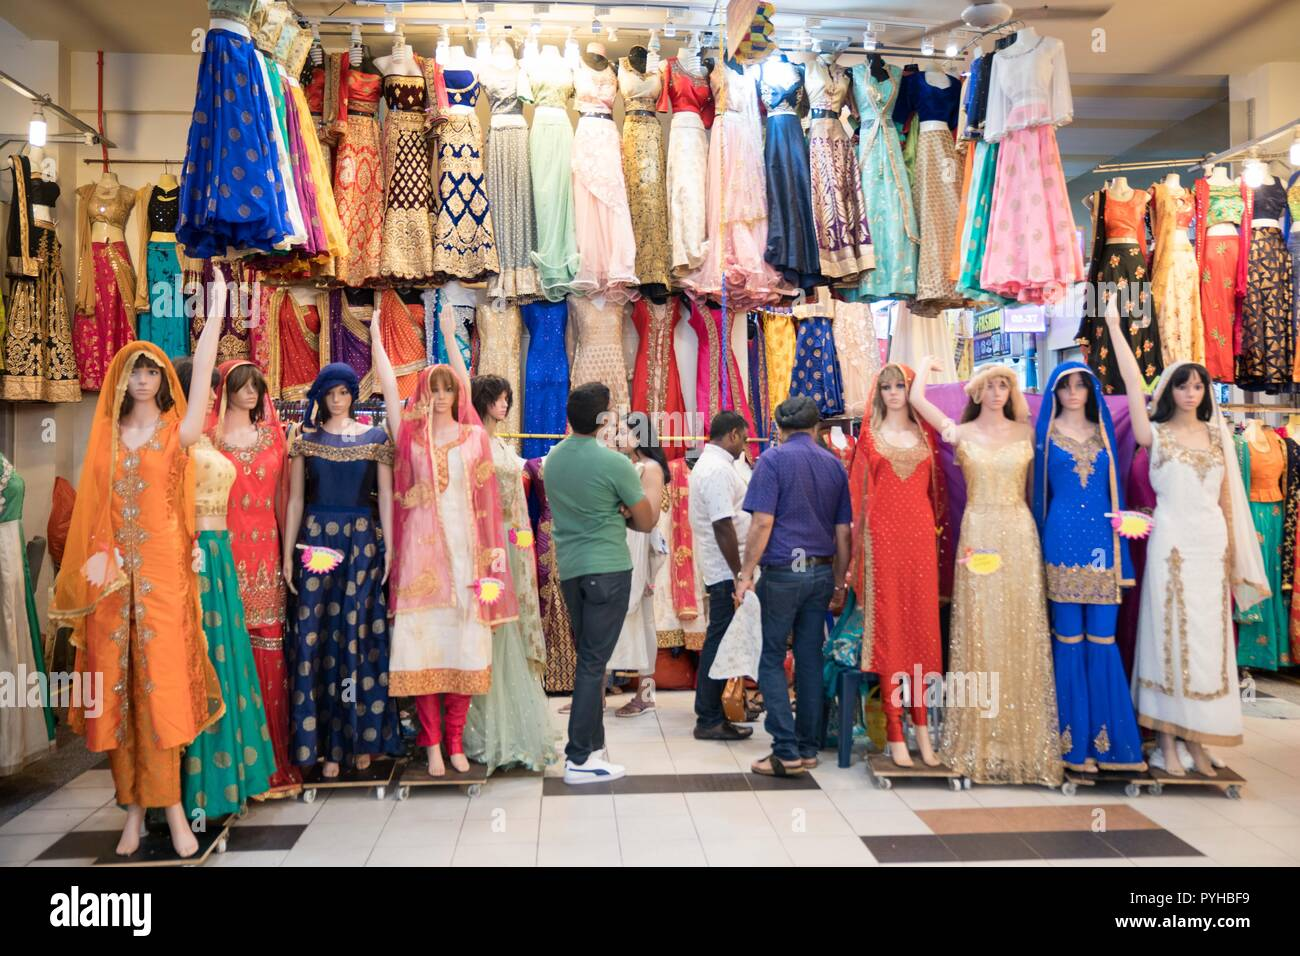 1d90edc20f A clothing store seen selling Indian traditional clothings in Little India  in Singapore. - Stock